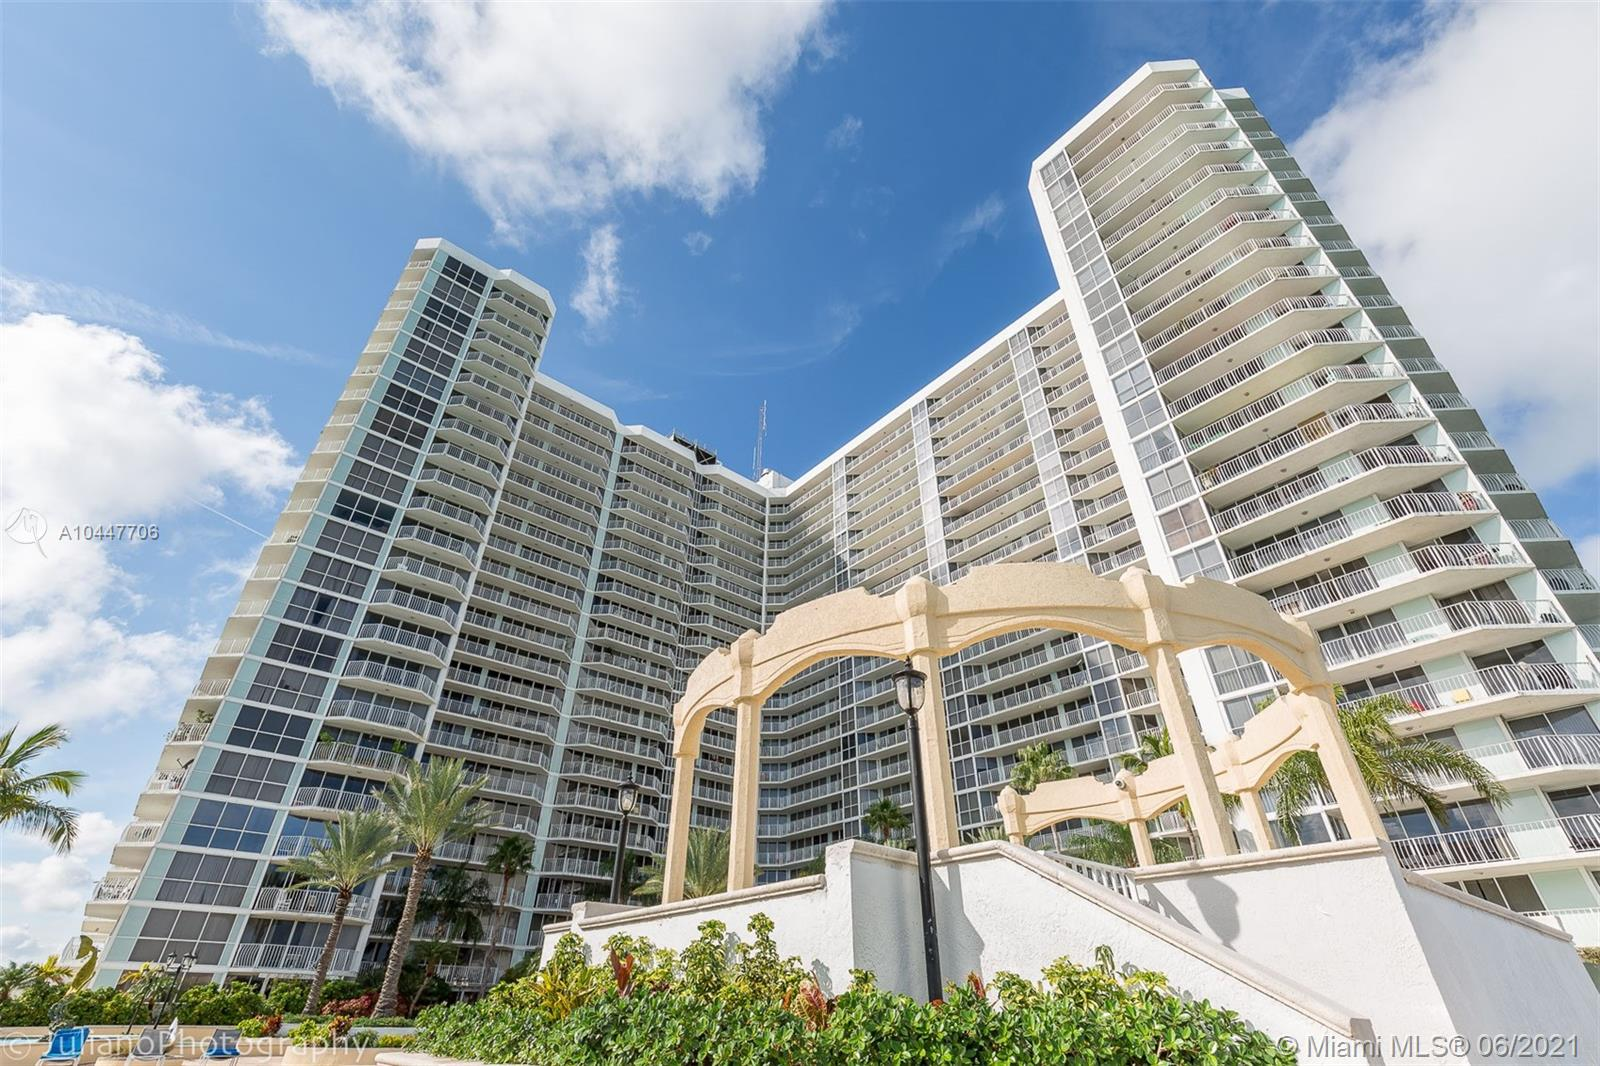 7601 E Treasure Dr #519 For Sale A10447706, FL